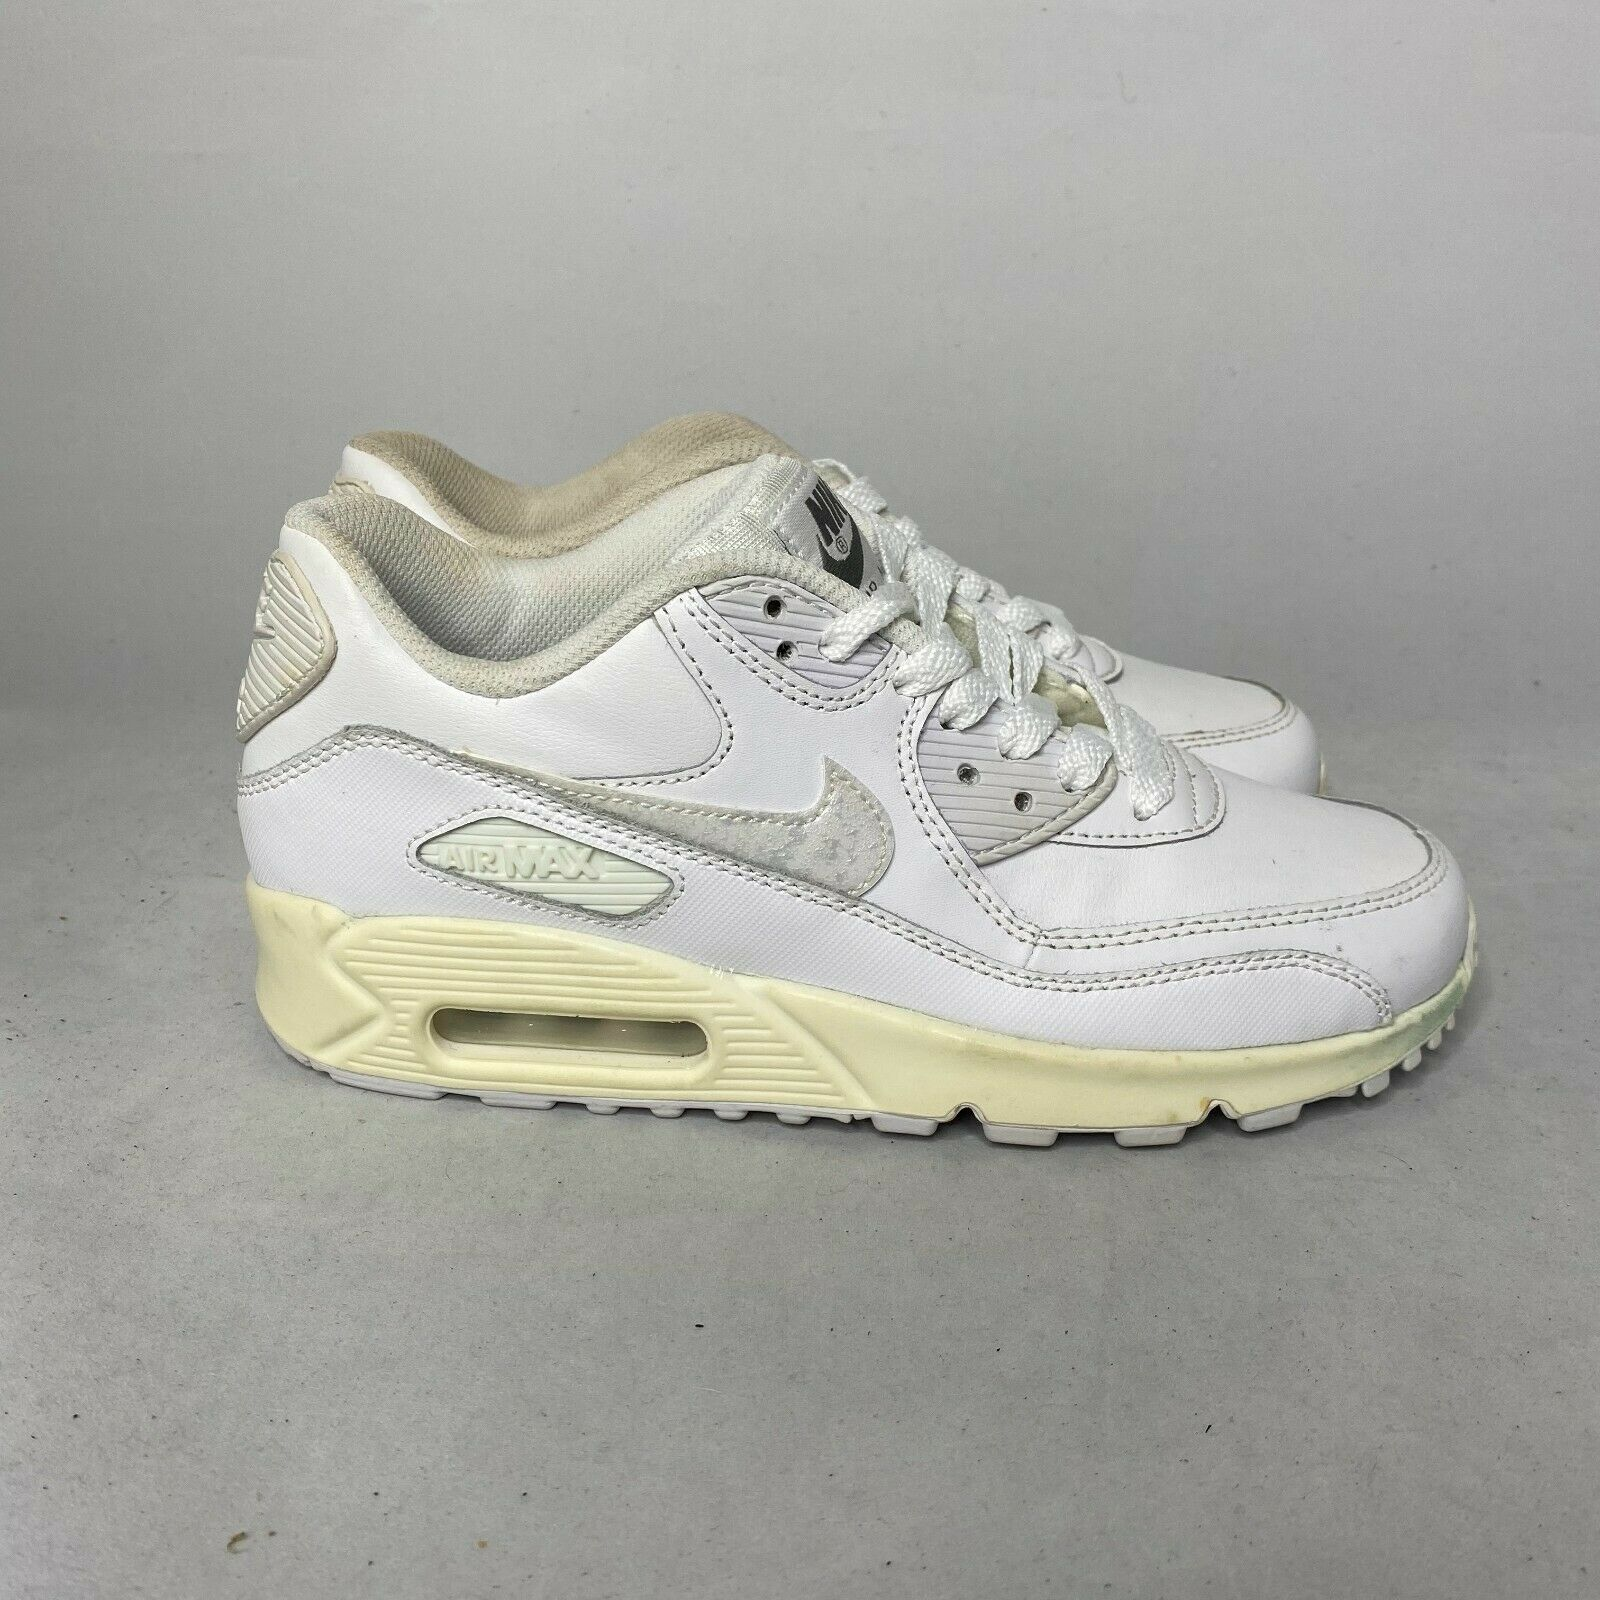 Nike Air Max 90 Leather GS Big Kids 724821-100 White Running Shoes ...